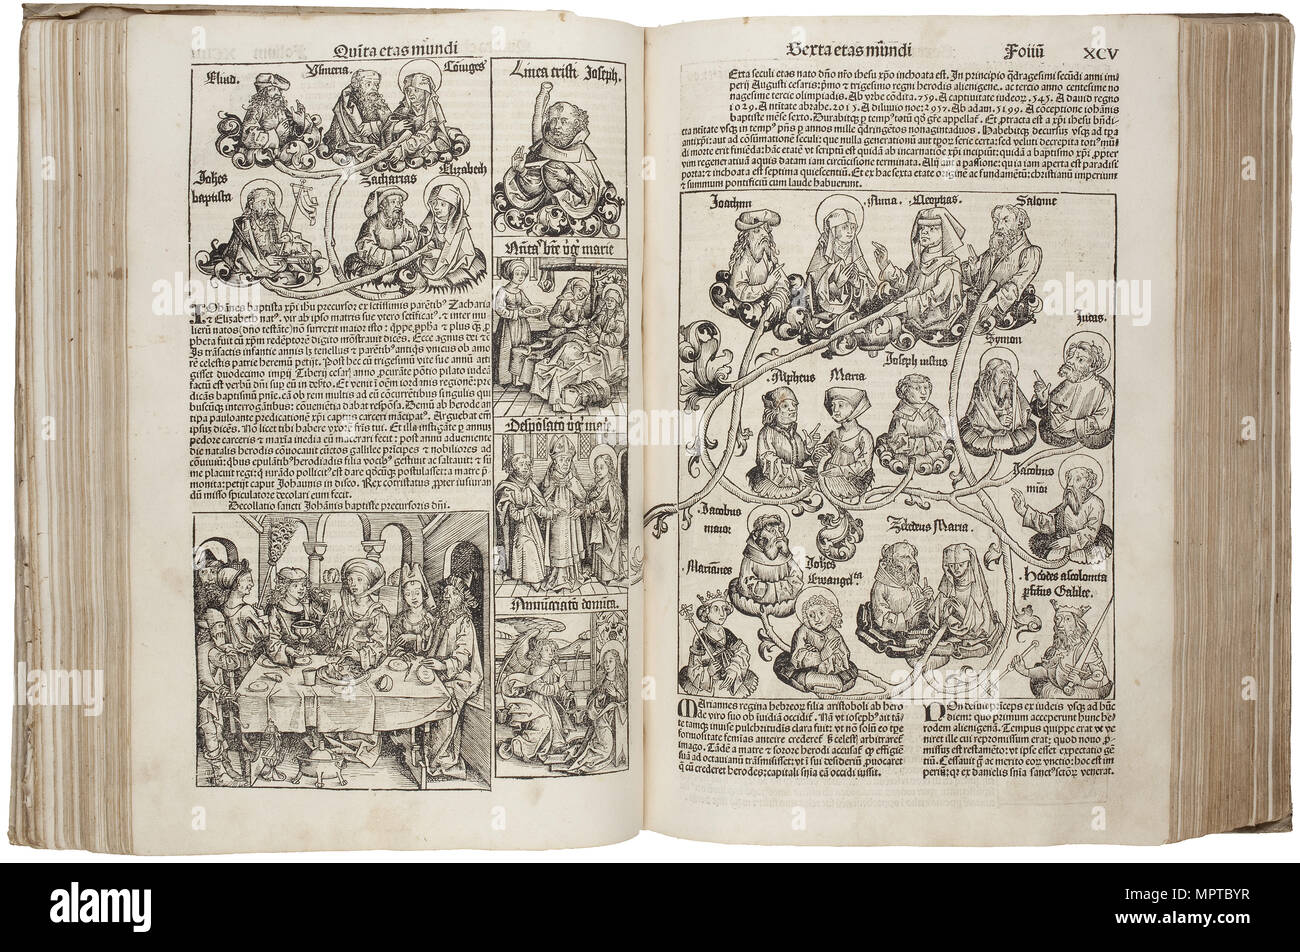 (from the Schedel's Chronicle of the World). - Stock Image